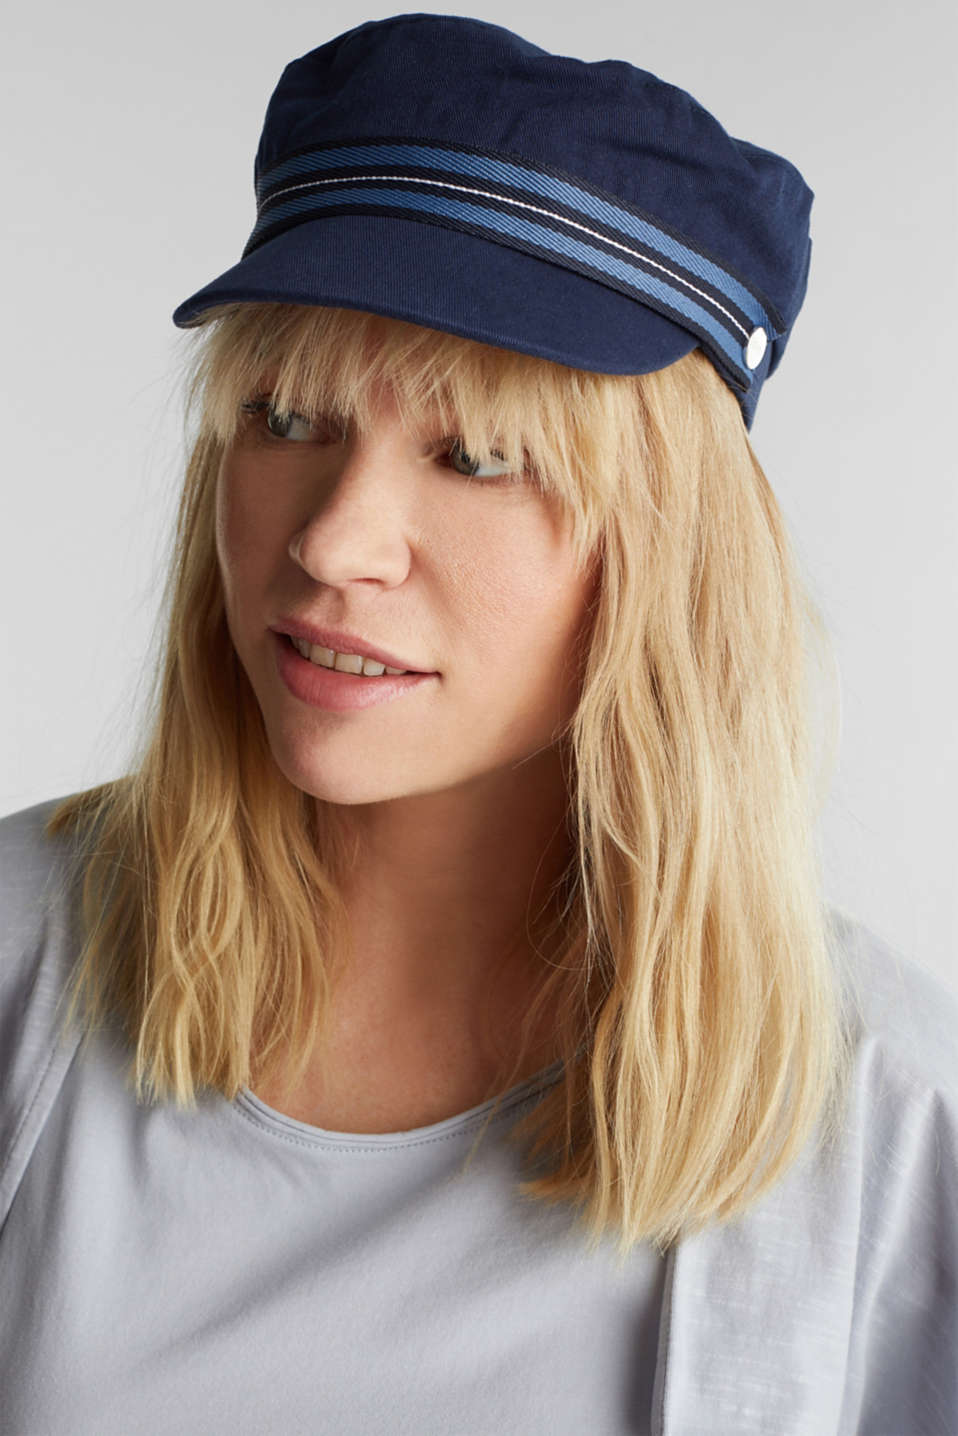 Sailor's cap made of 100% cotton, NAVY, detail image number 2